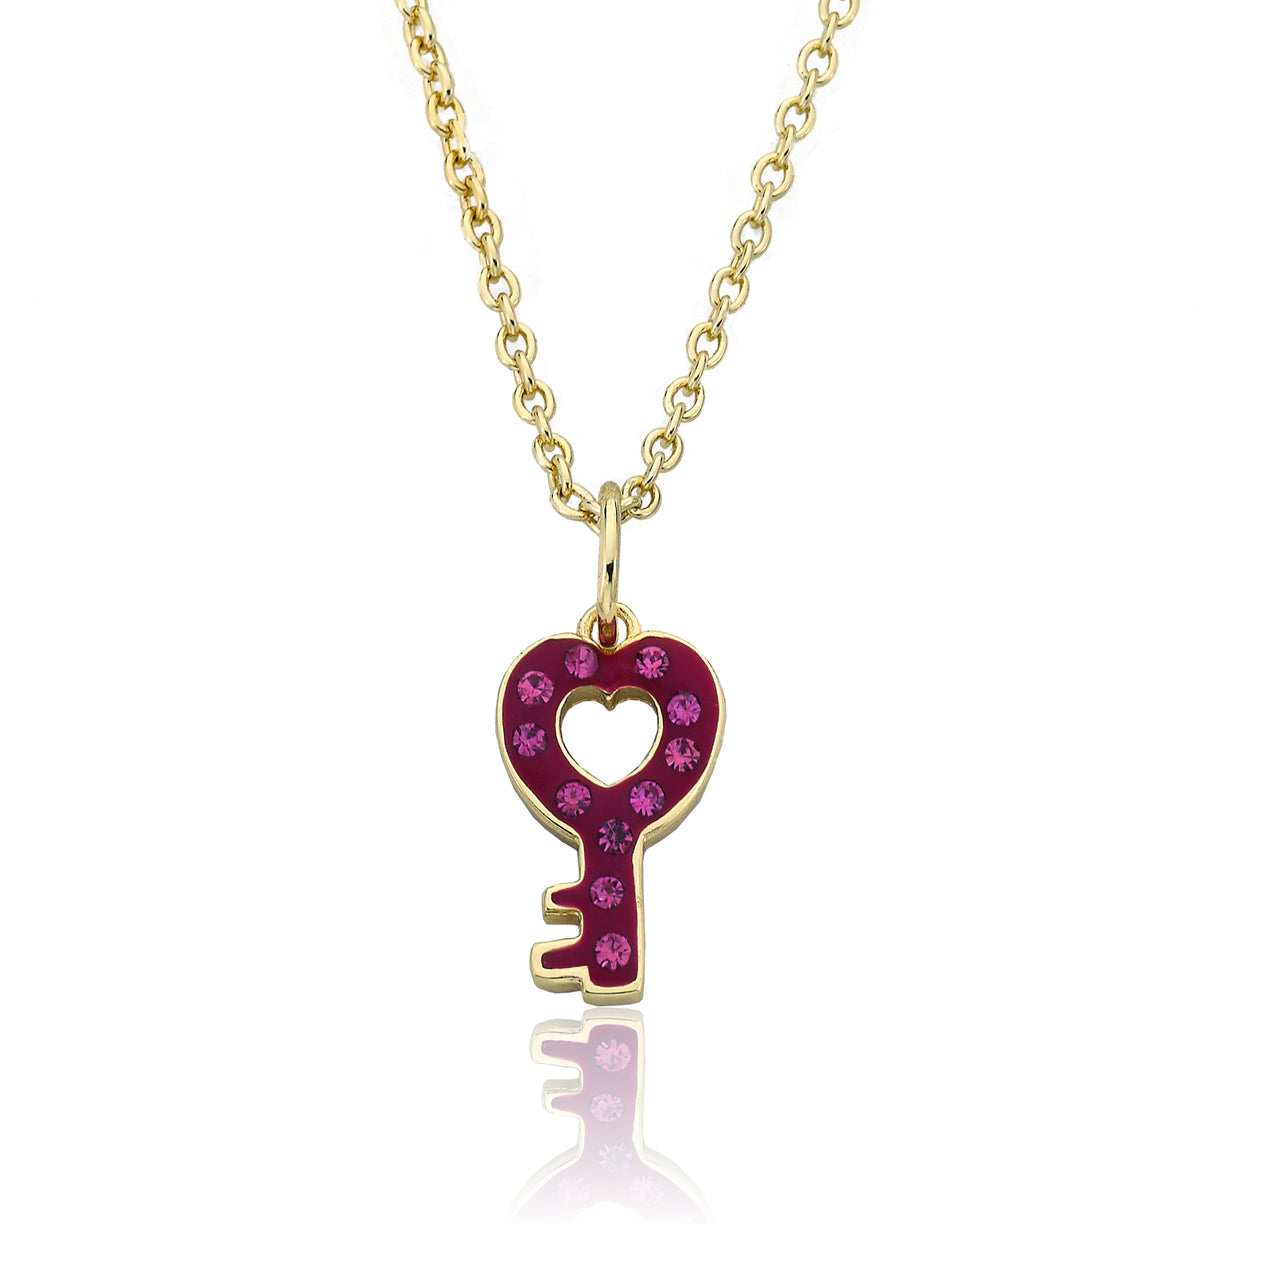 Heart Of Jewels Crystal Heart Shape Key Chain Necklace